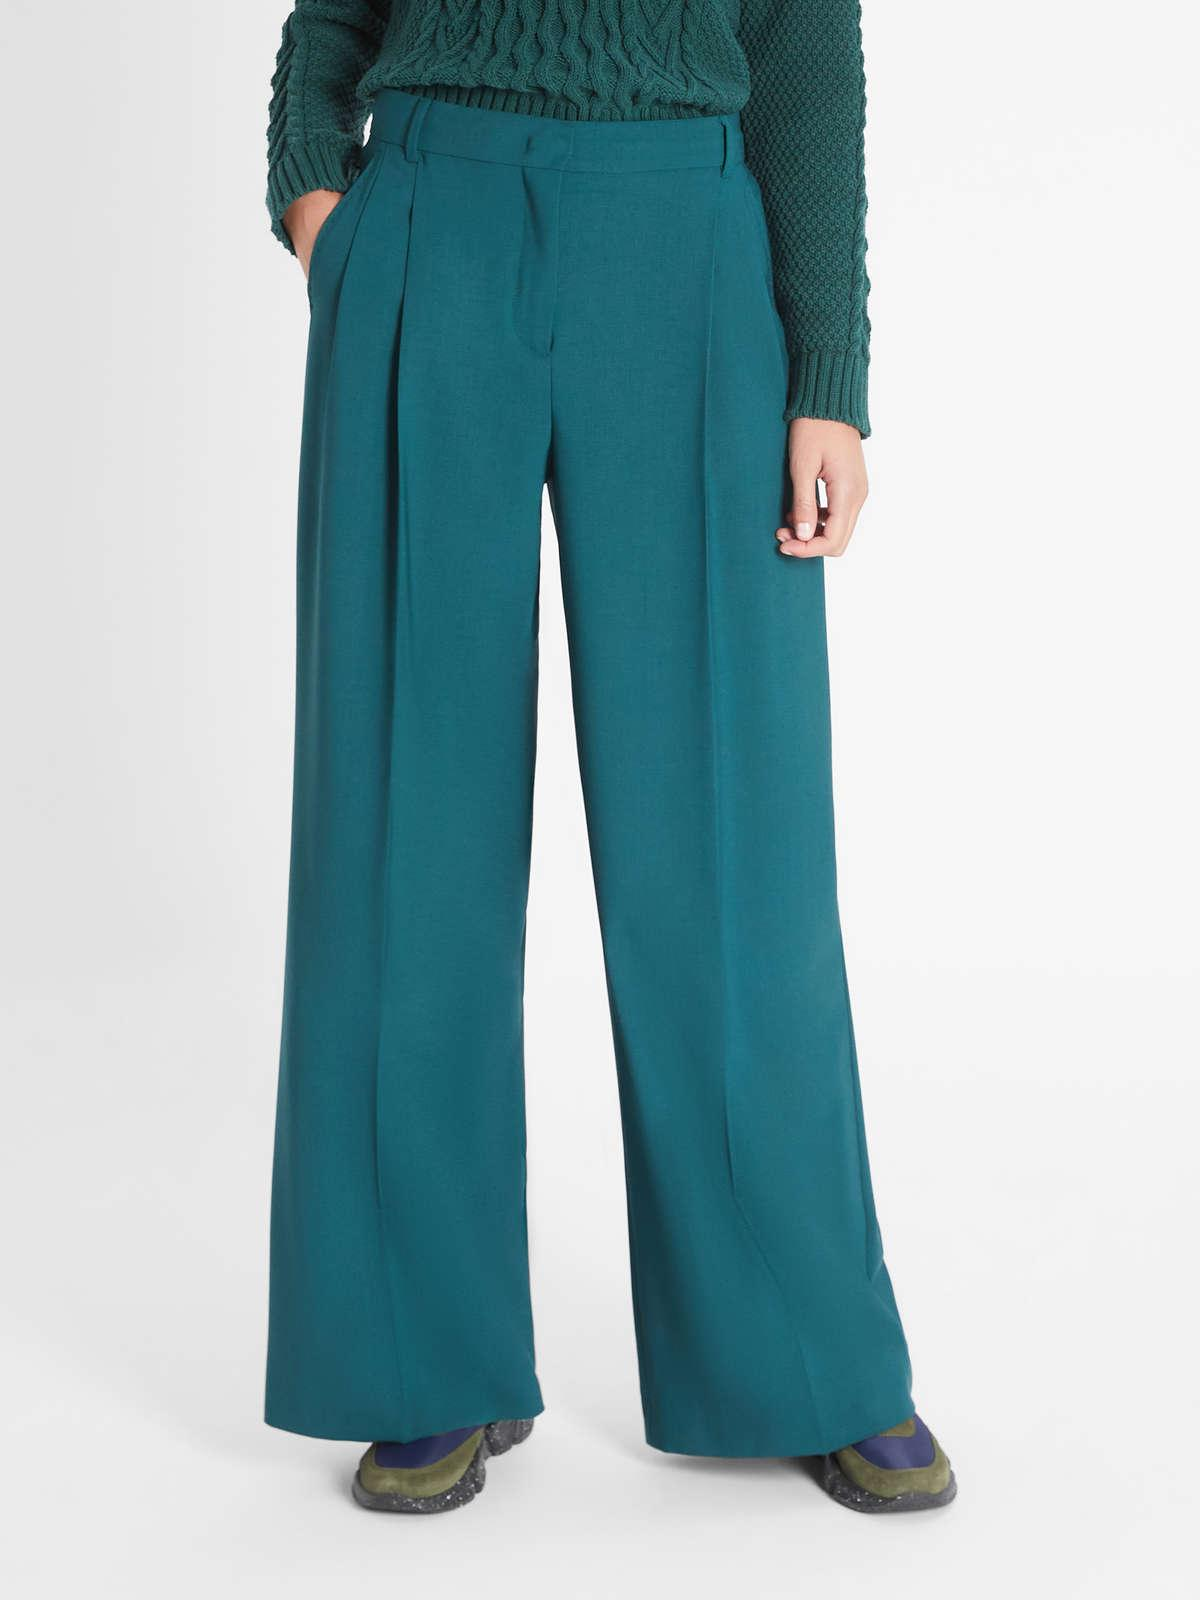 Womens Max Mara Trousers And Jeans   Woollen Cloth Trousers Dark Green